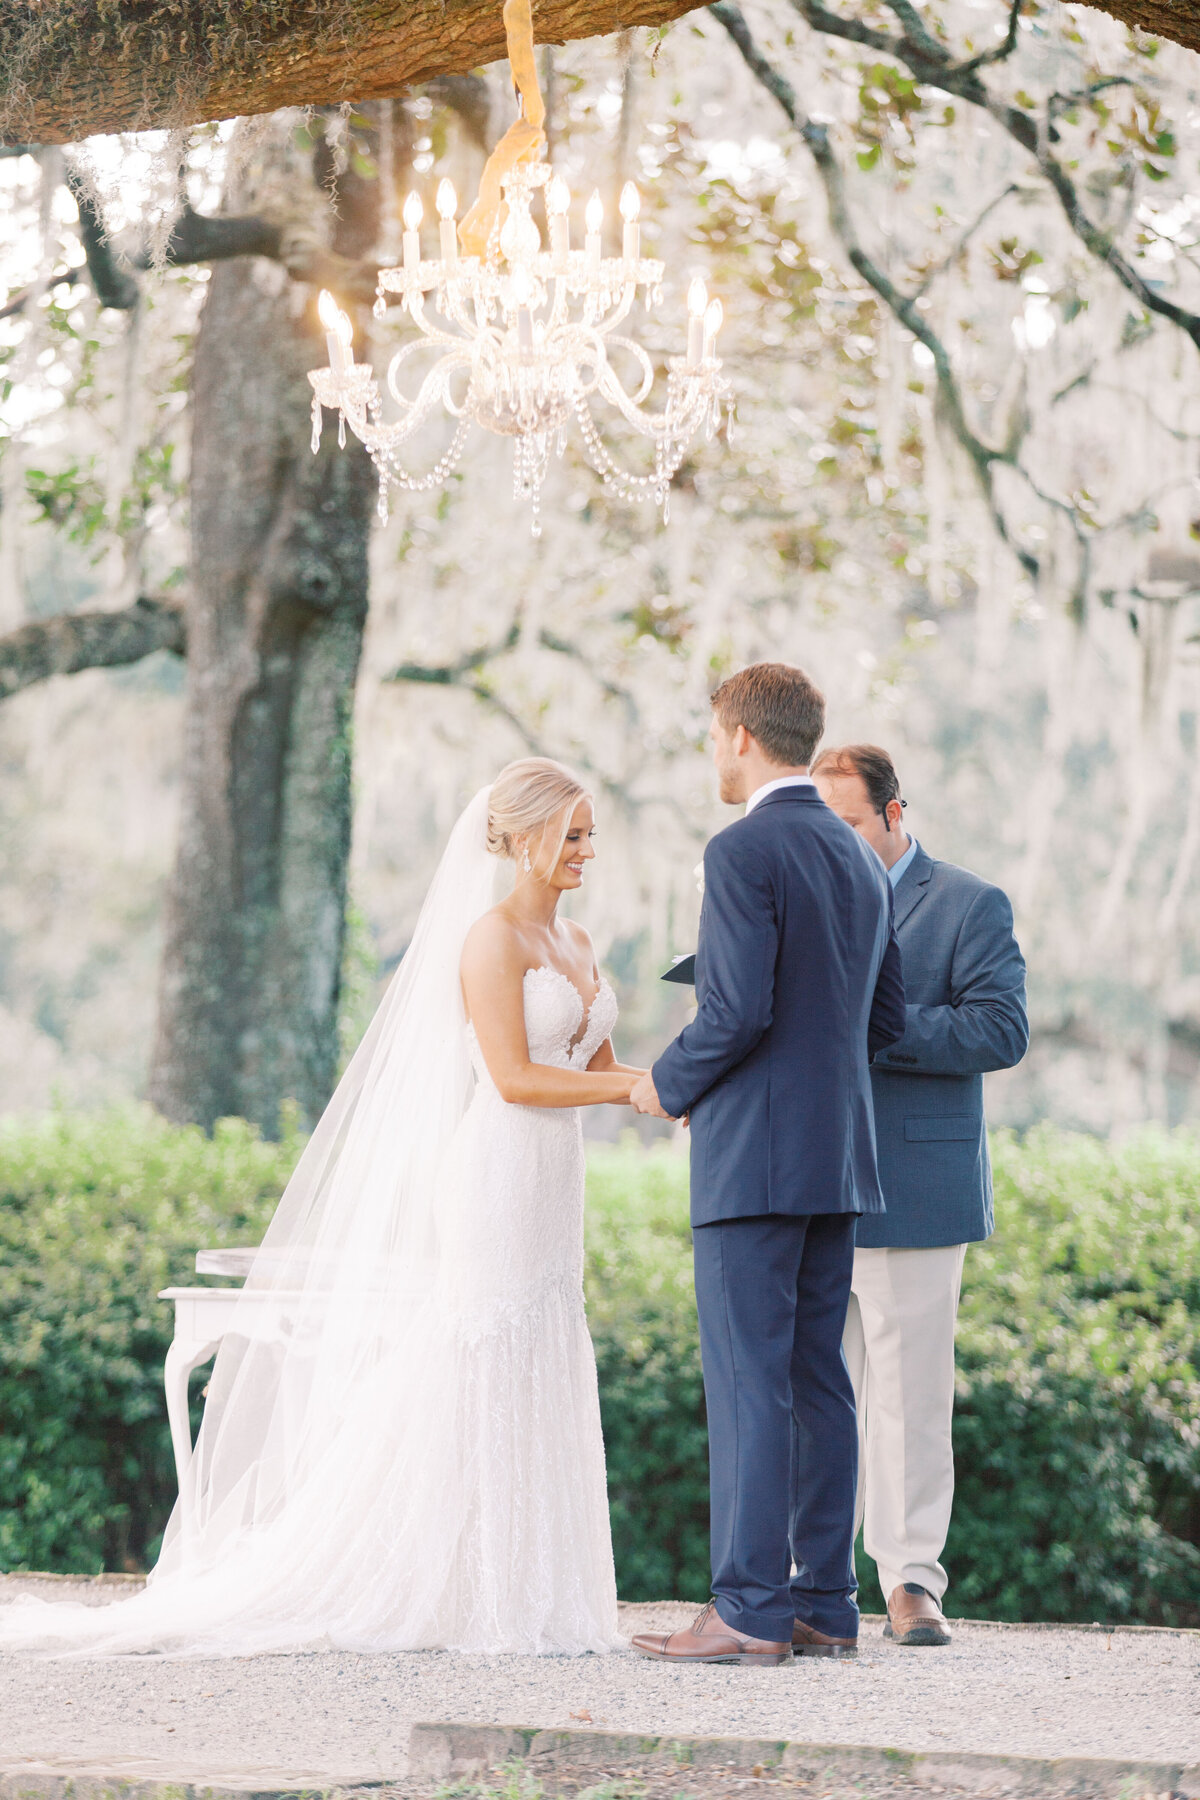 Melton_Wedding__Middleton_Place_Plantation_Charleston_South_Carolina_Jacksonville_Florida_Devon_Donnahoo_Photography__0642